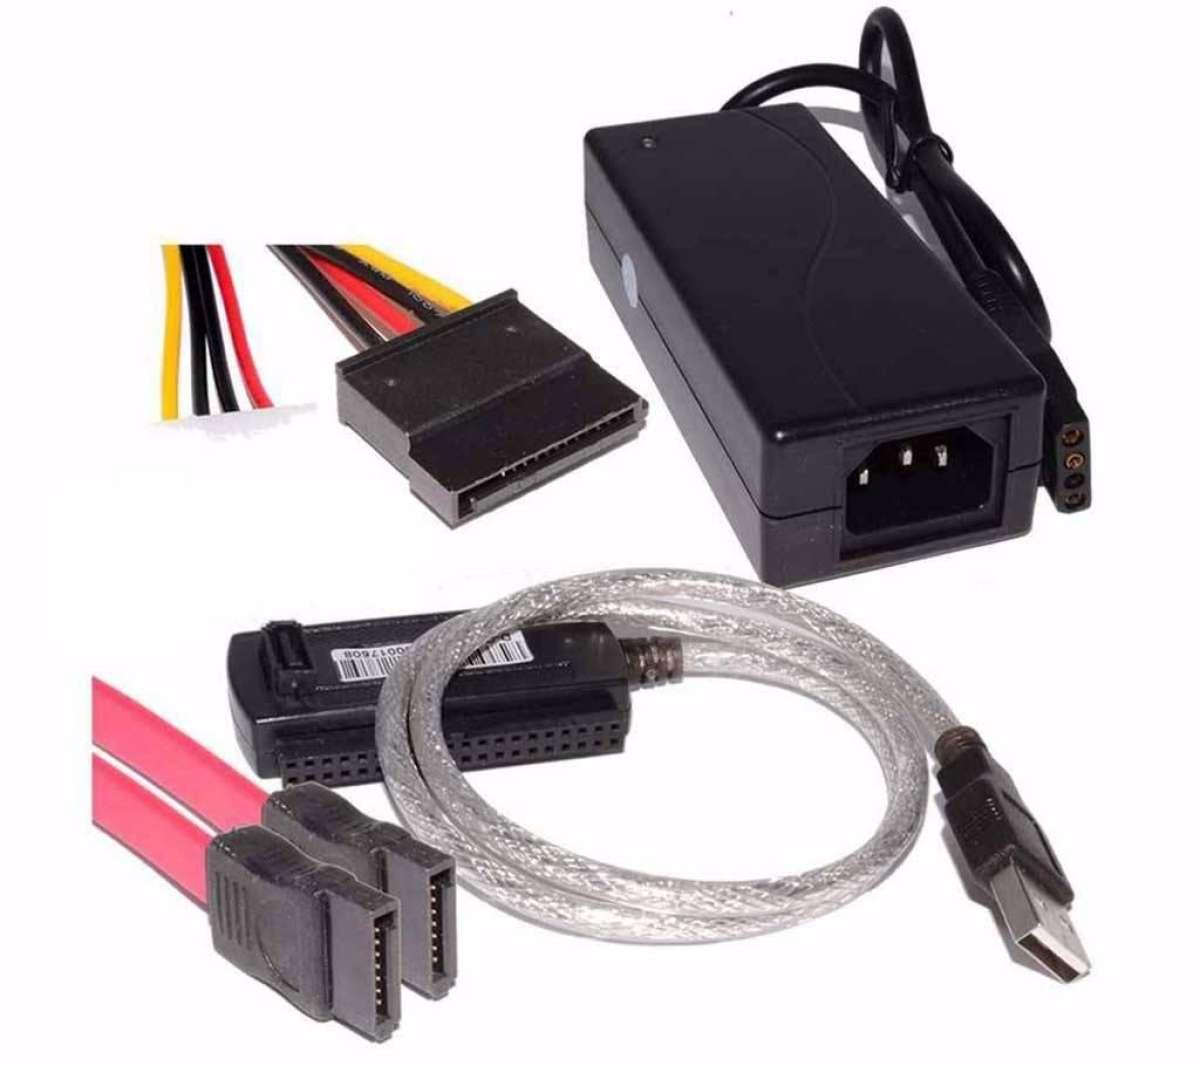 USB 2 0 To SATA & IDE Adapter Cable 3 5 and 2 5